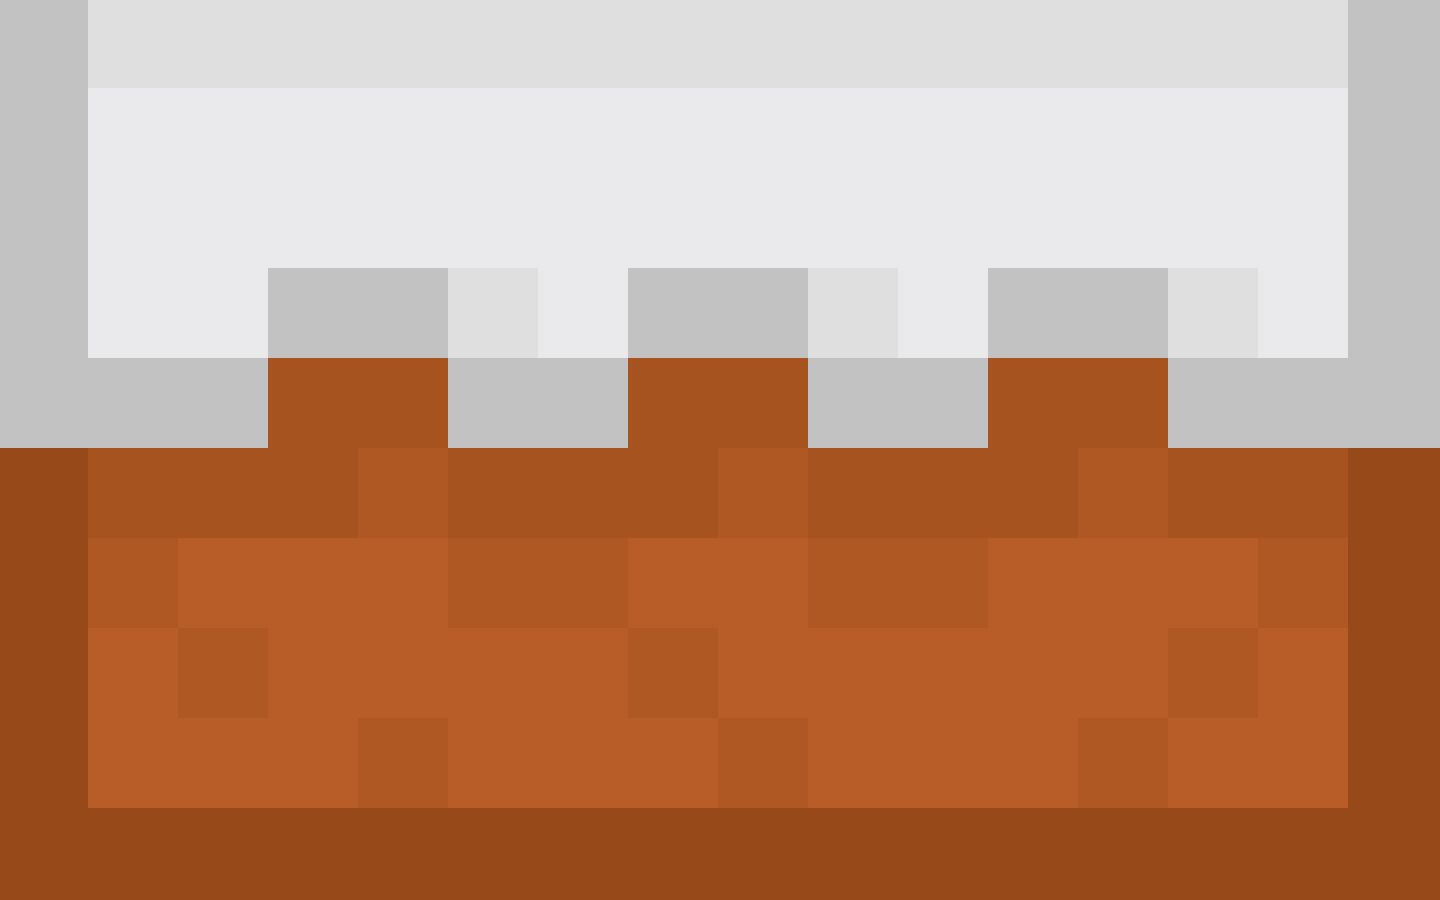 Cool Wallpaper Minecraft Wall - minecraft_cake_wallpaper_no__1_by_lynchmob10_09-d3k3hpt  Pictures_174313.jpg